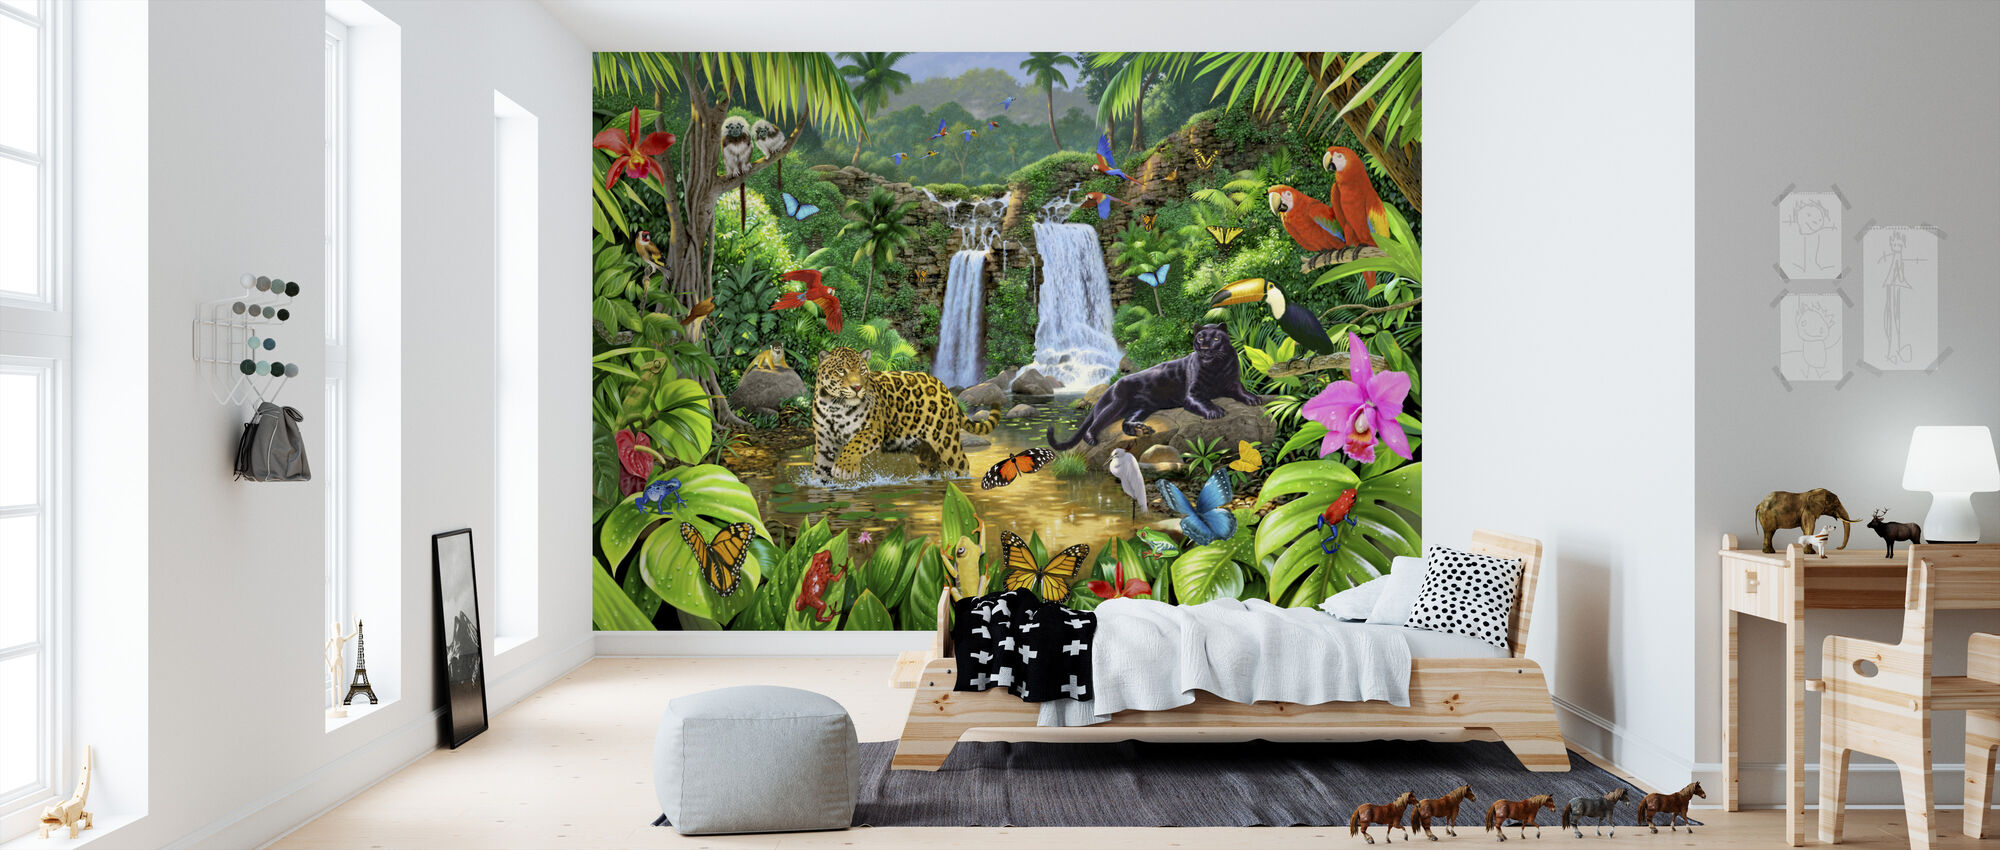 Rainforest Harmony - Wallpaper - Kids Room